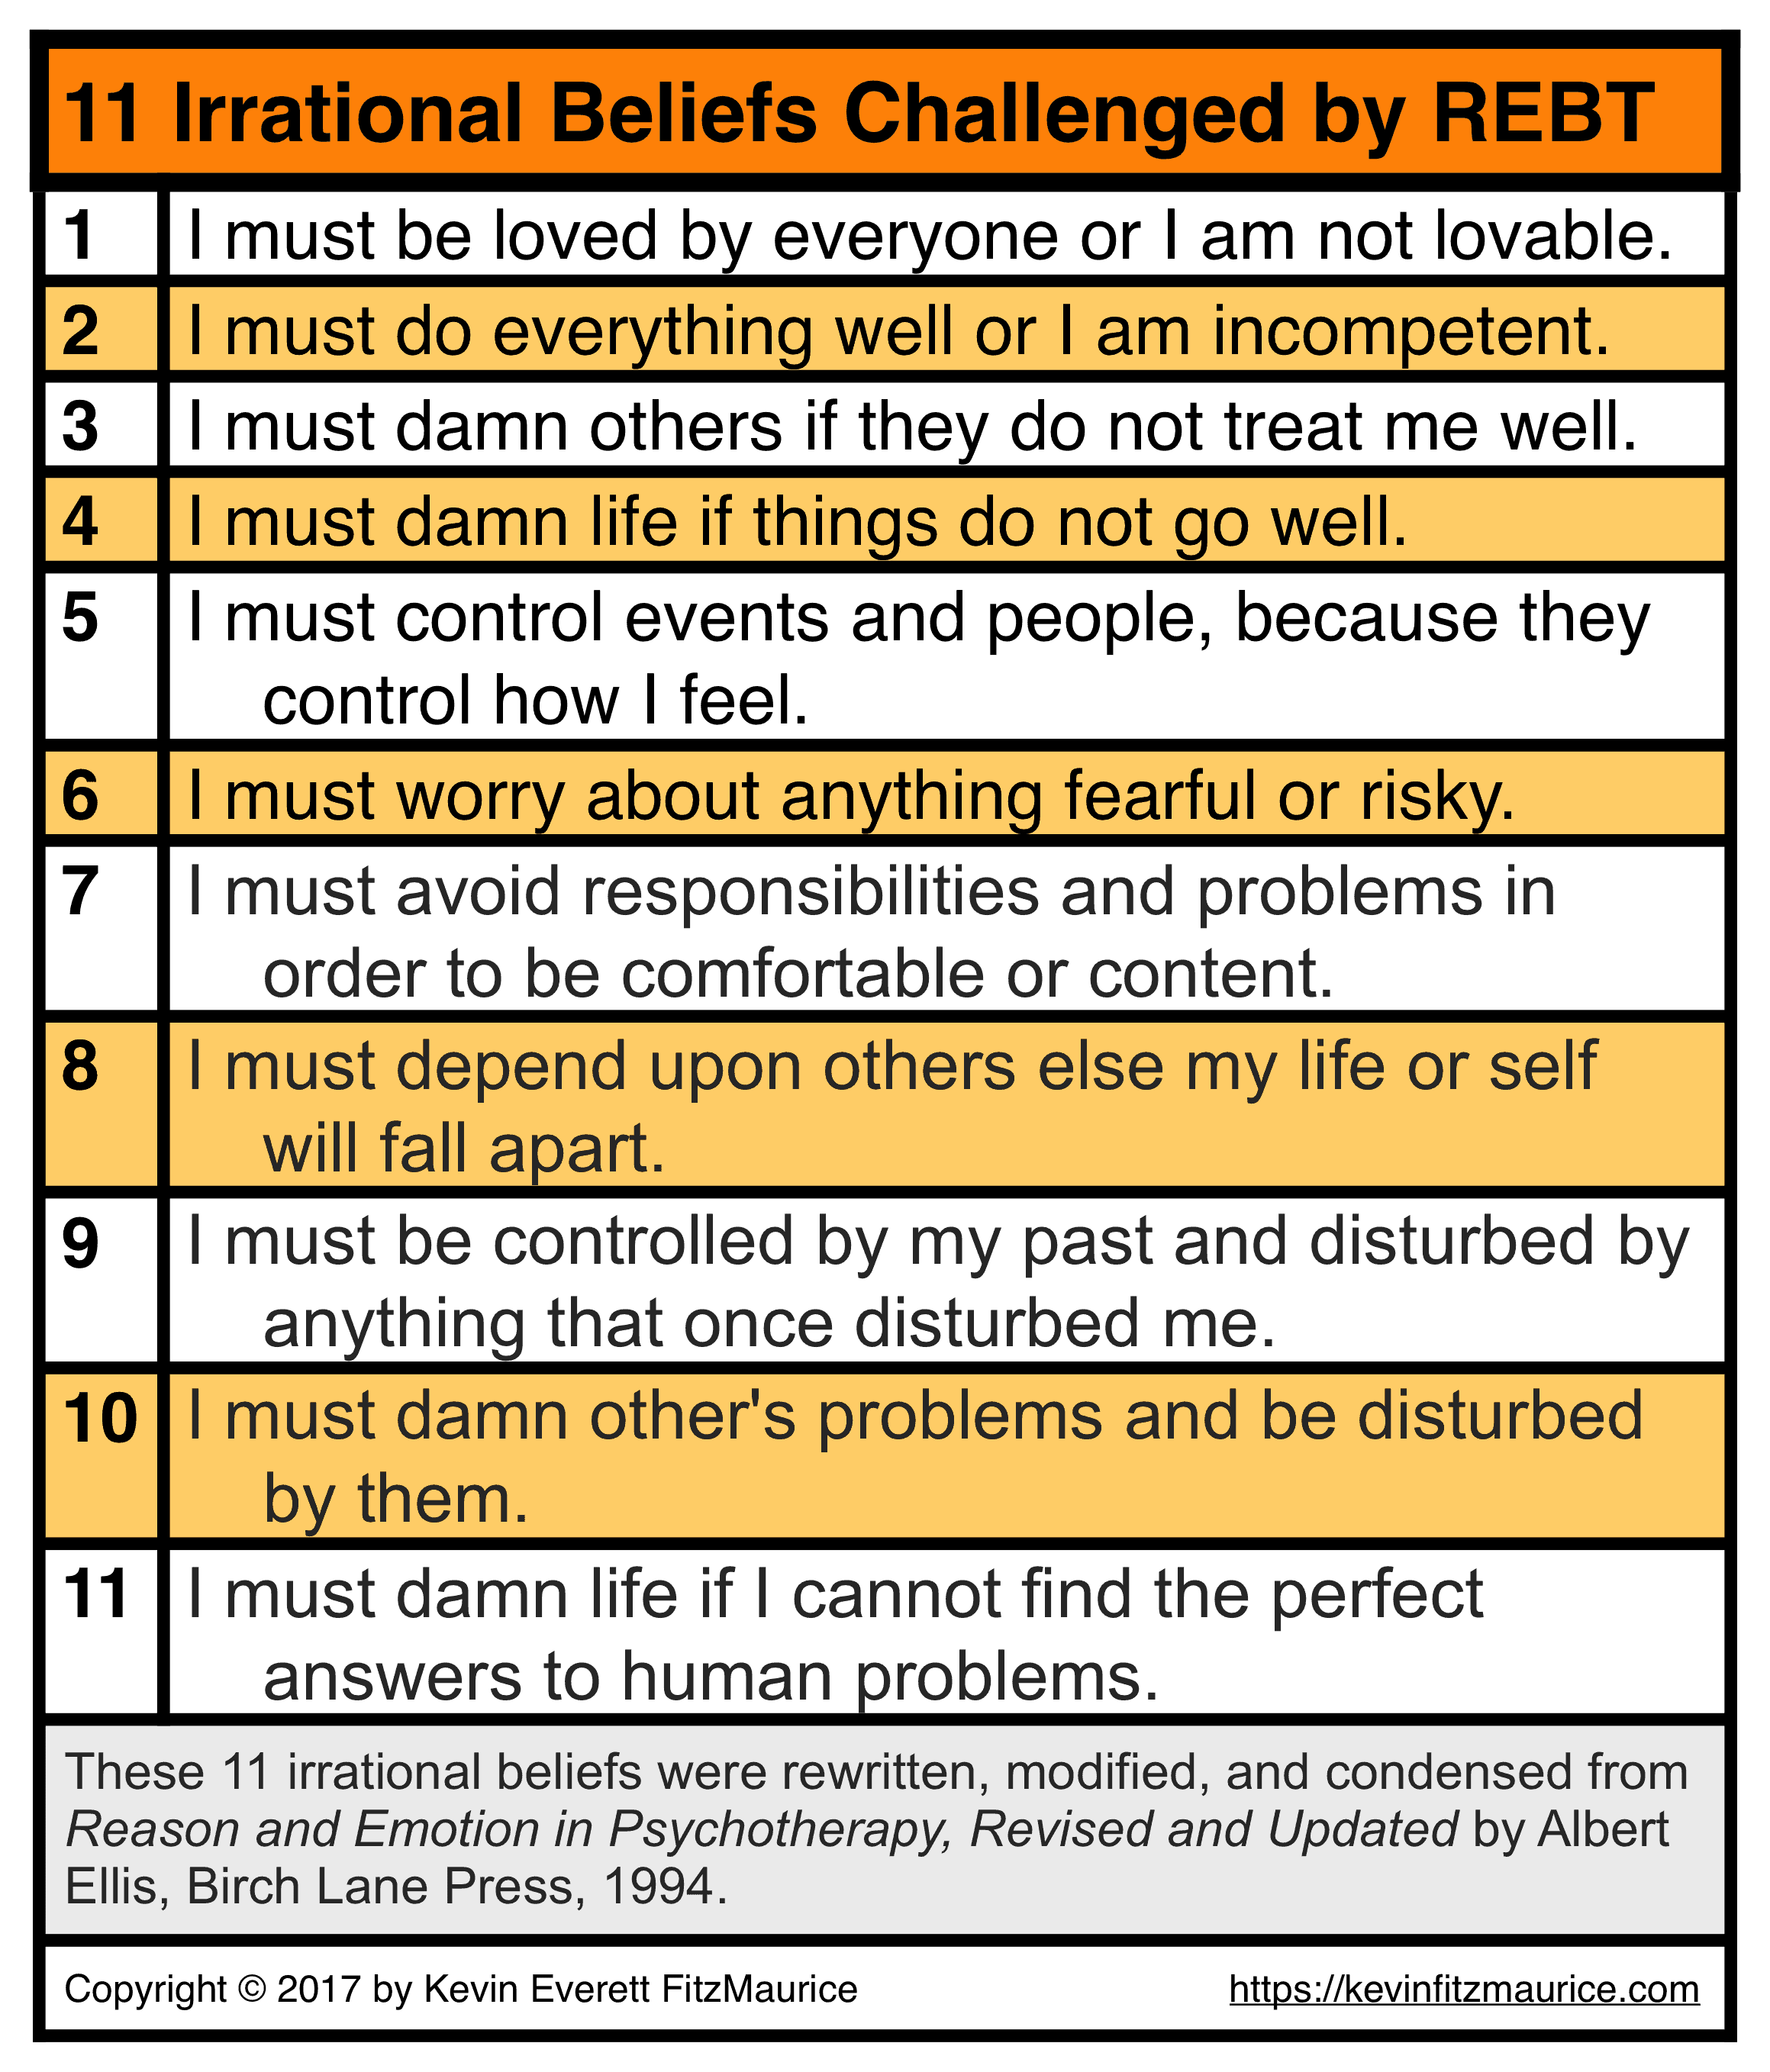 11 Irrational Beliefs of REBT